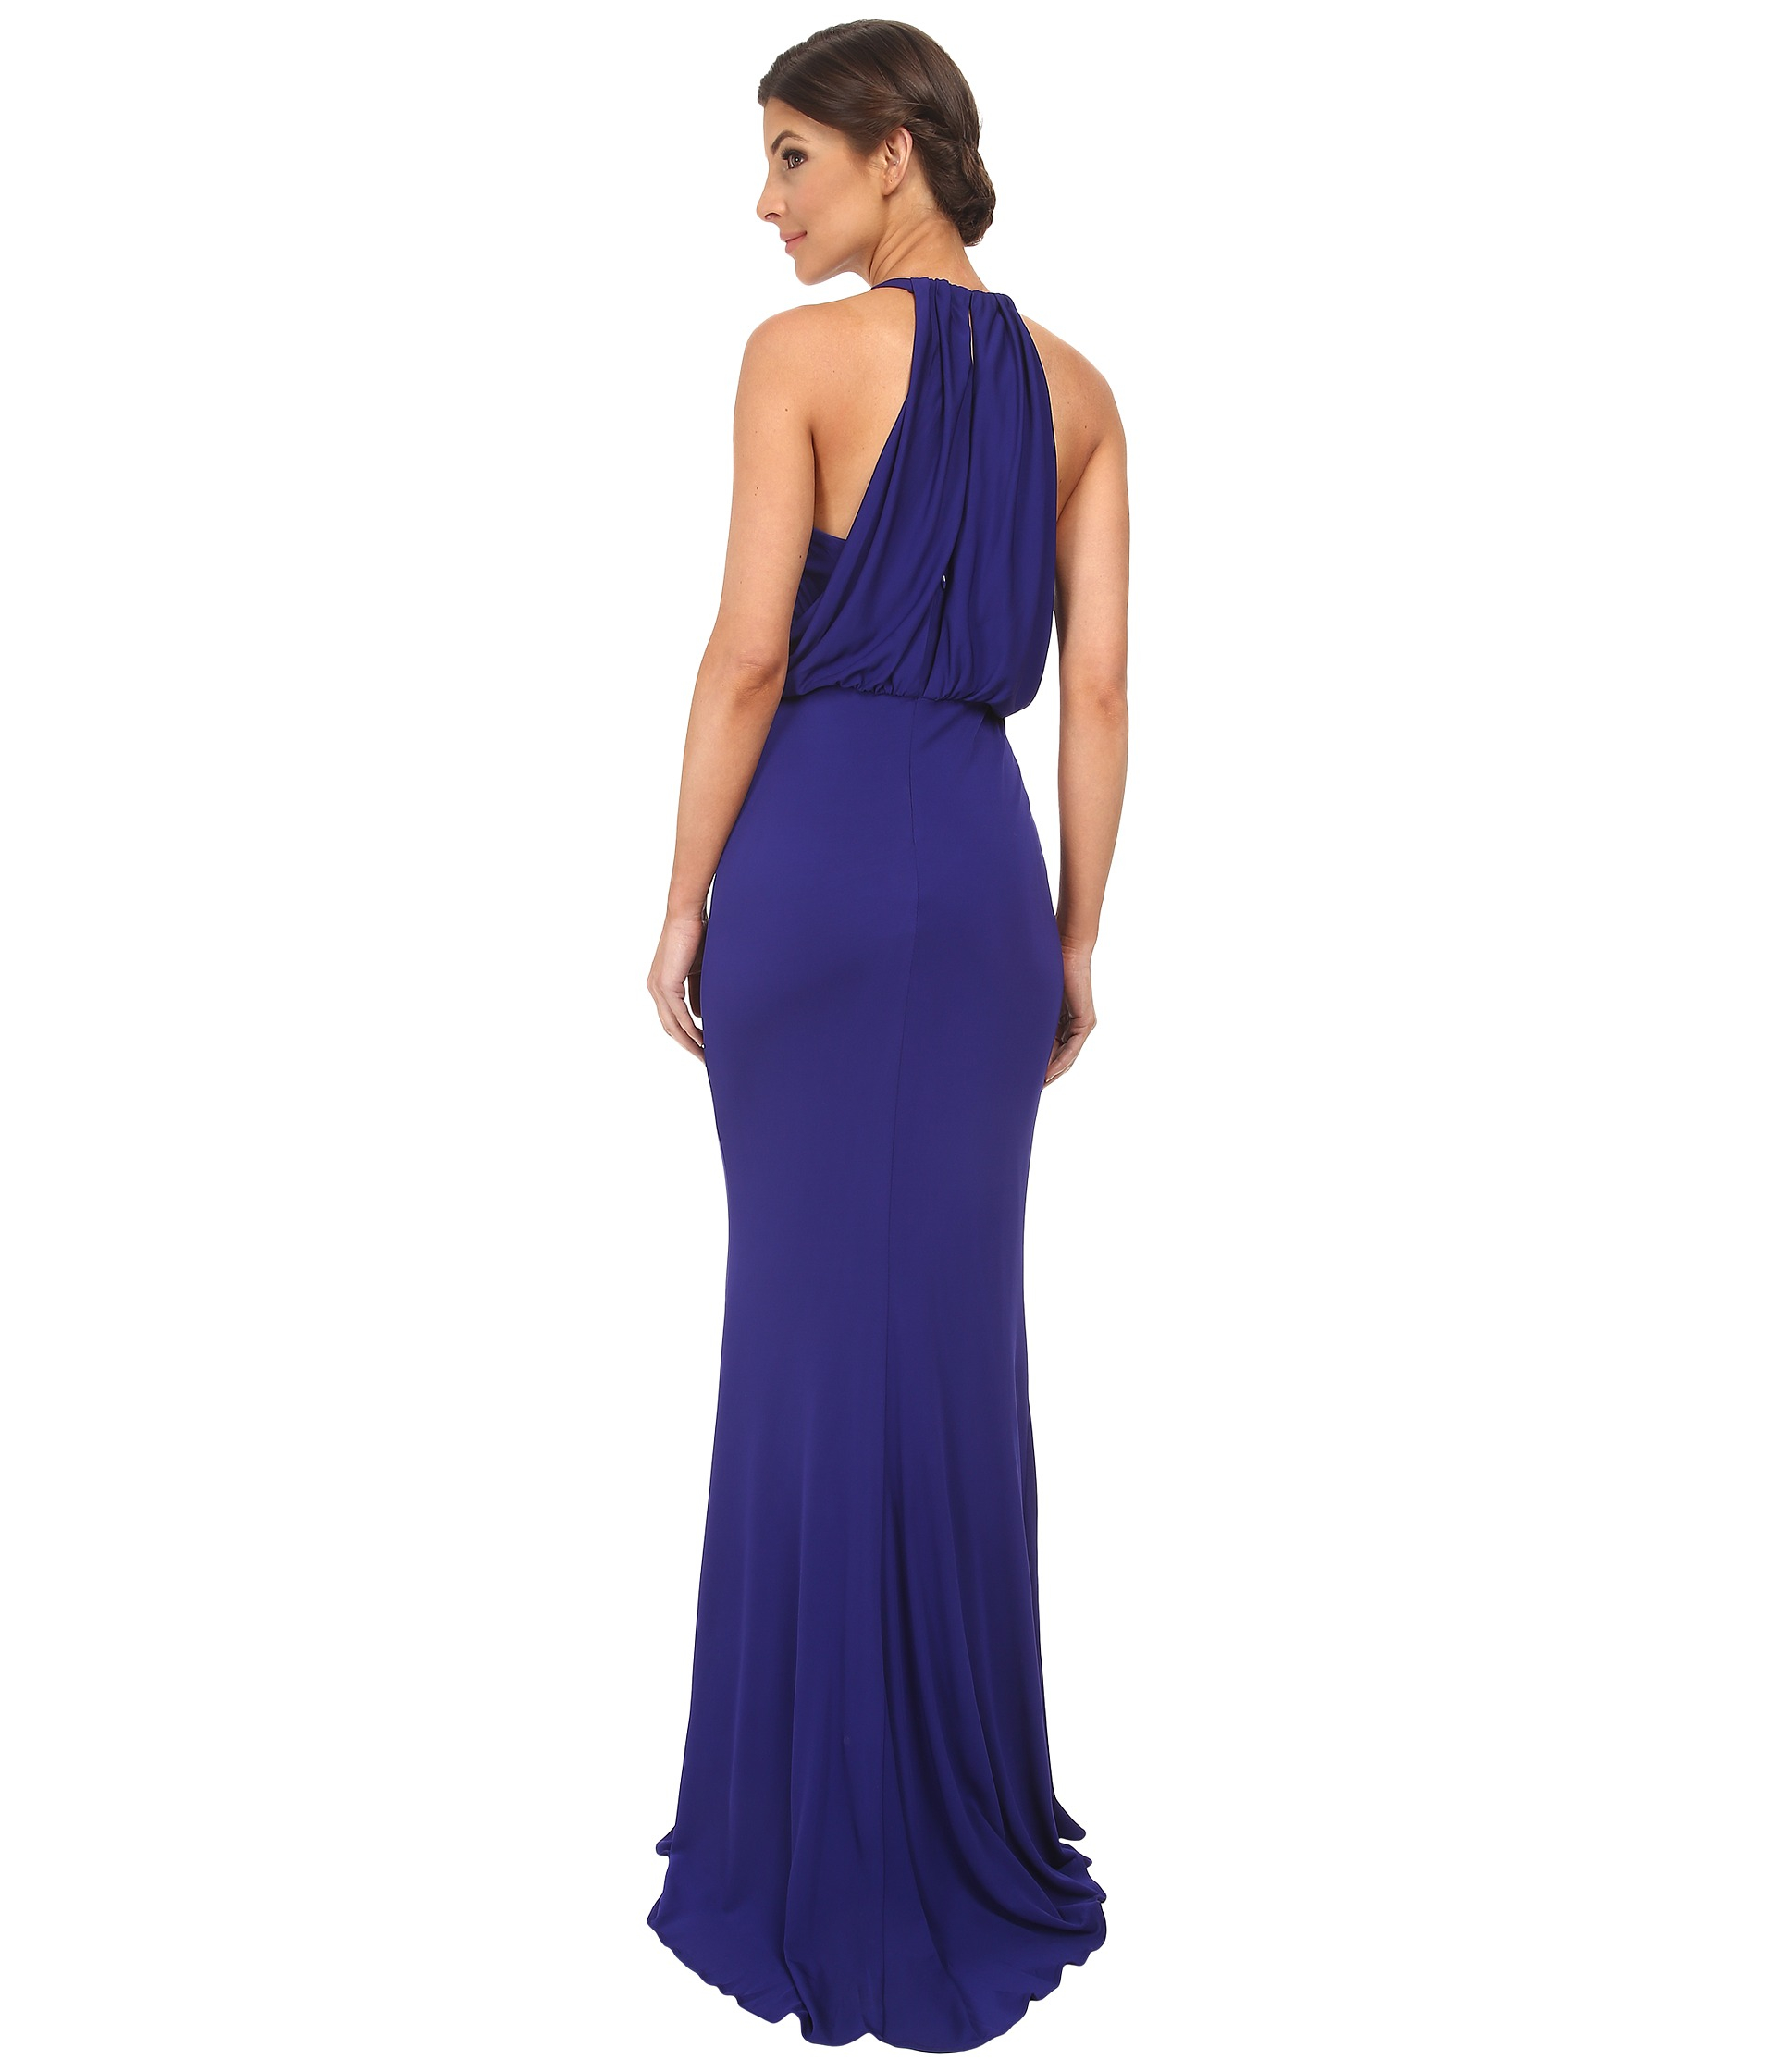 Lyst - Badgley Mischka Matte Jersey Drape Halter Gown in Blue